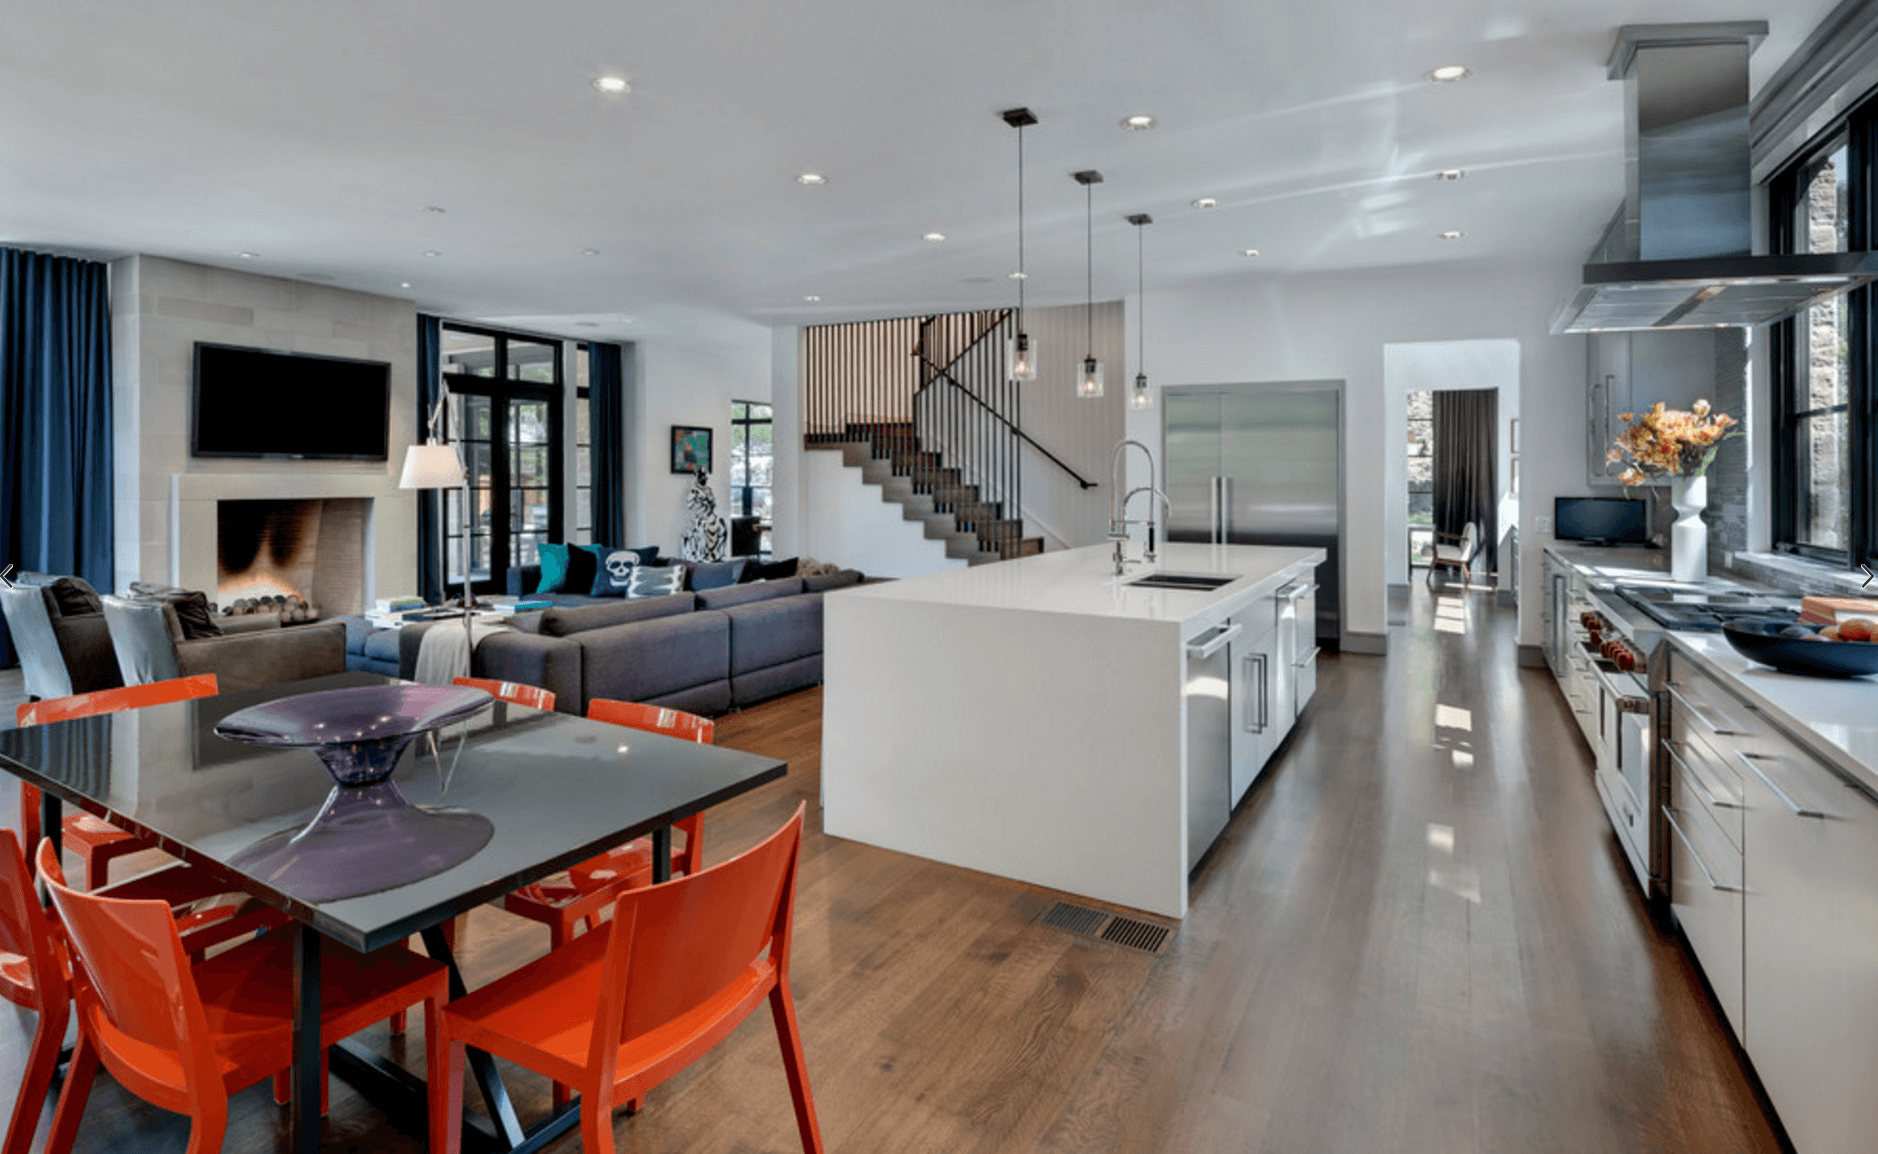 Open Floor Plans: A Trend for Modern Living